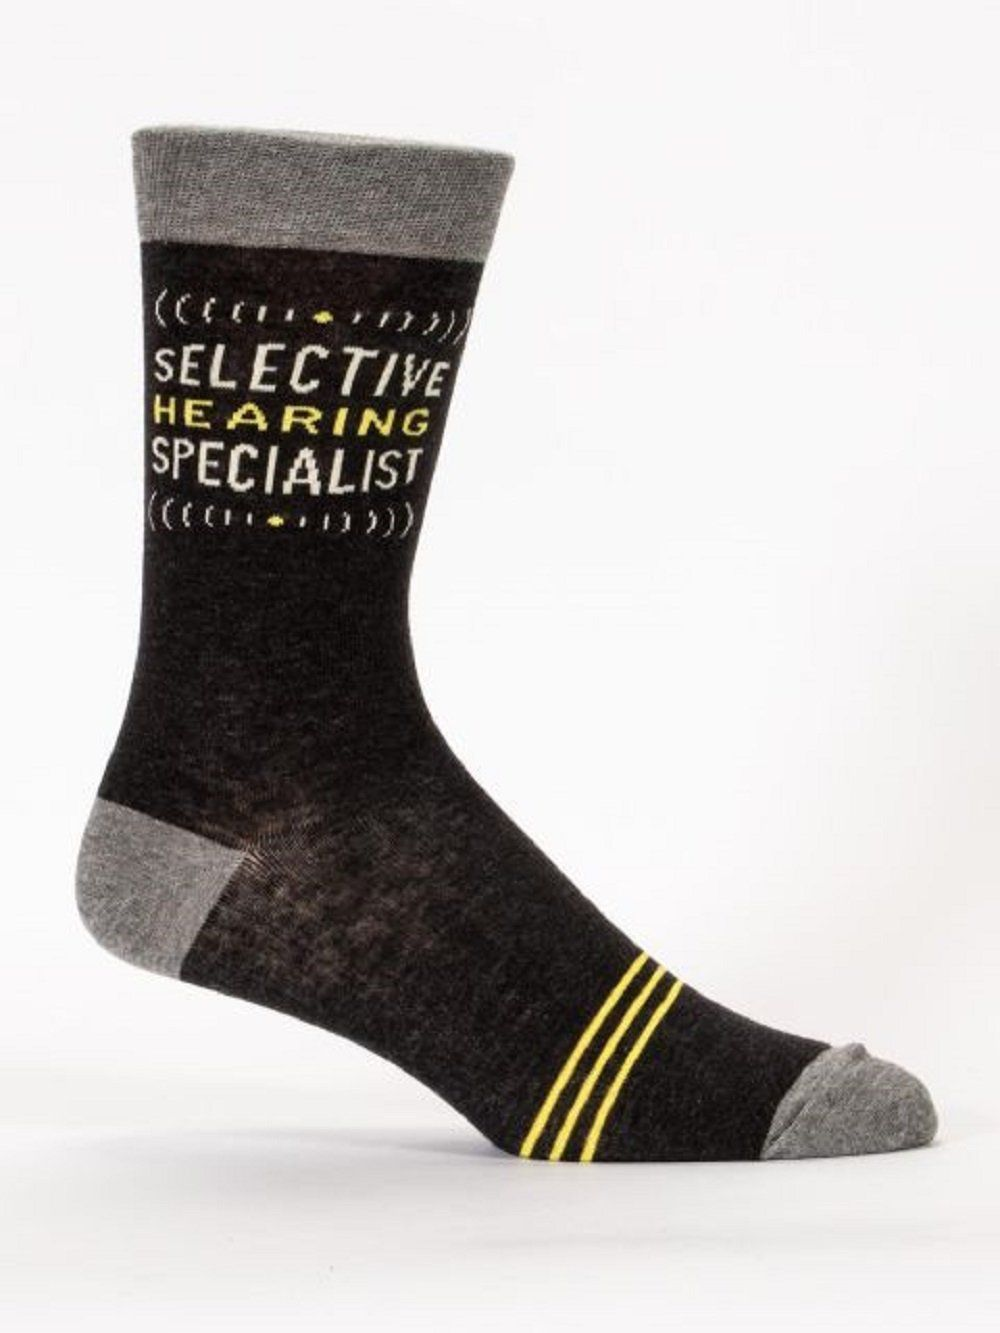 Selective Hearing Men S Crew Socks Hipster Nerdy Geeky Trendy Black Gray Funny Novelty Socks With Cool Design Bold Crazy Unique Quirky Dress Socks Mens Crew Socks Blue Q Socks Blue Q [ 1333 x 1000 Pixel ]